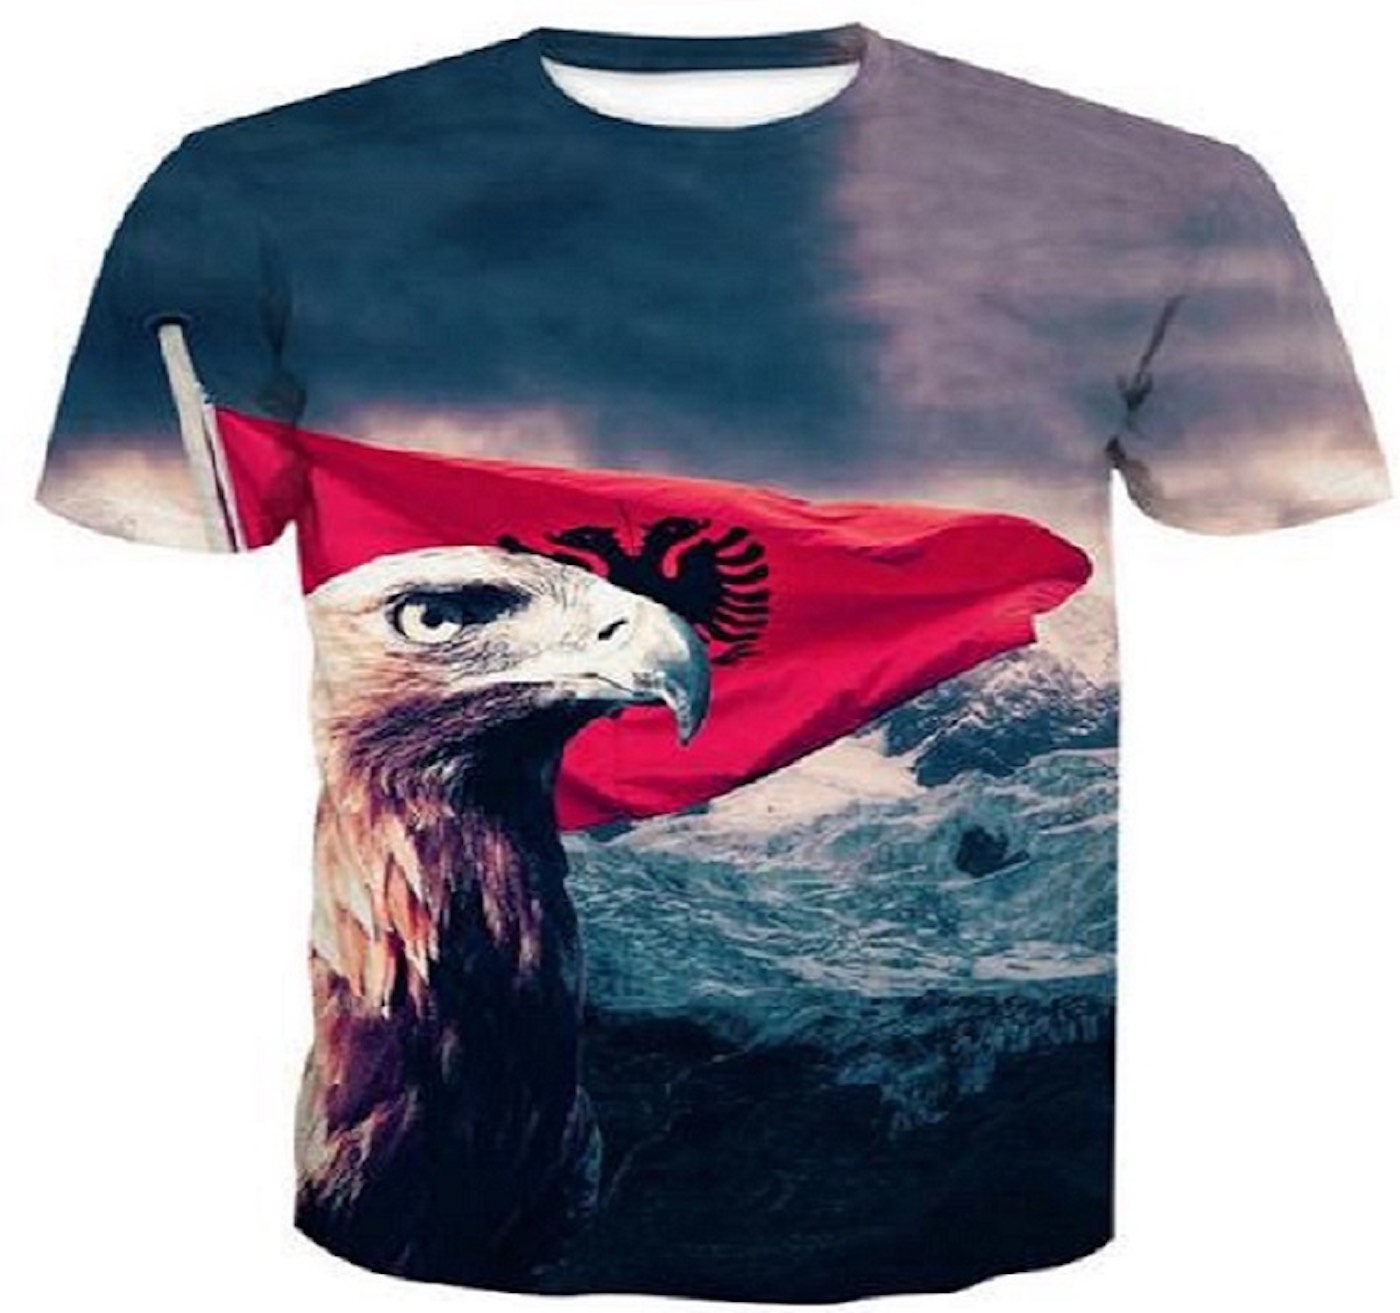 The Coolest 3D T Shirts for Men to Find the Best Summer Style